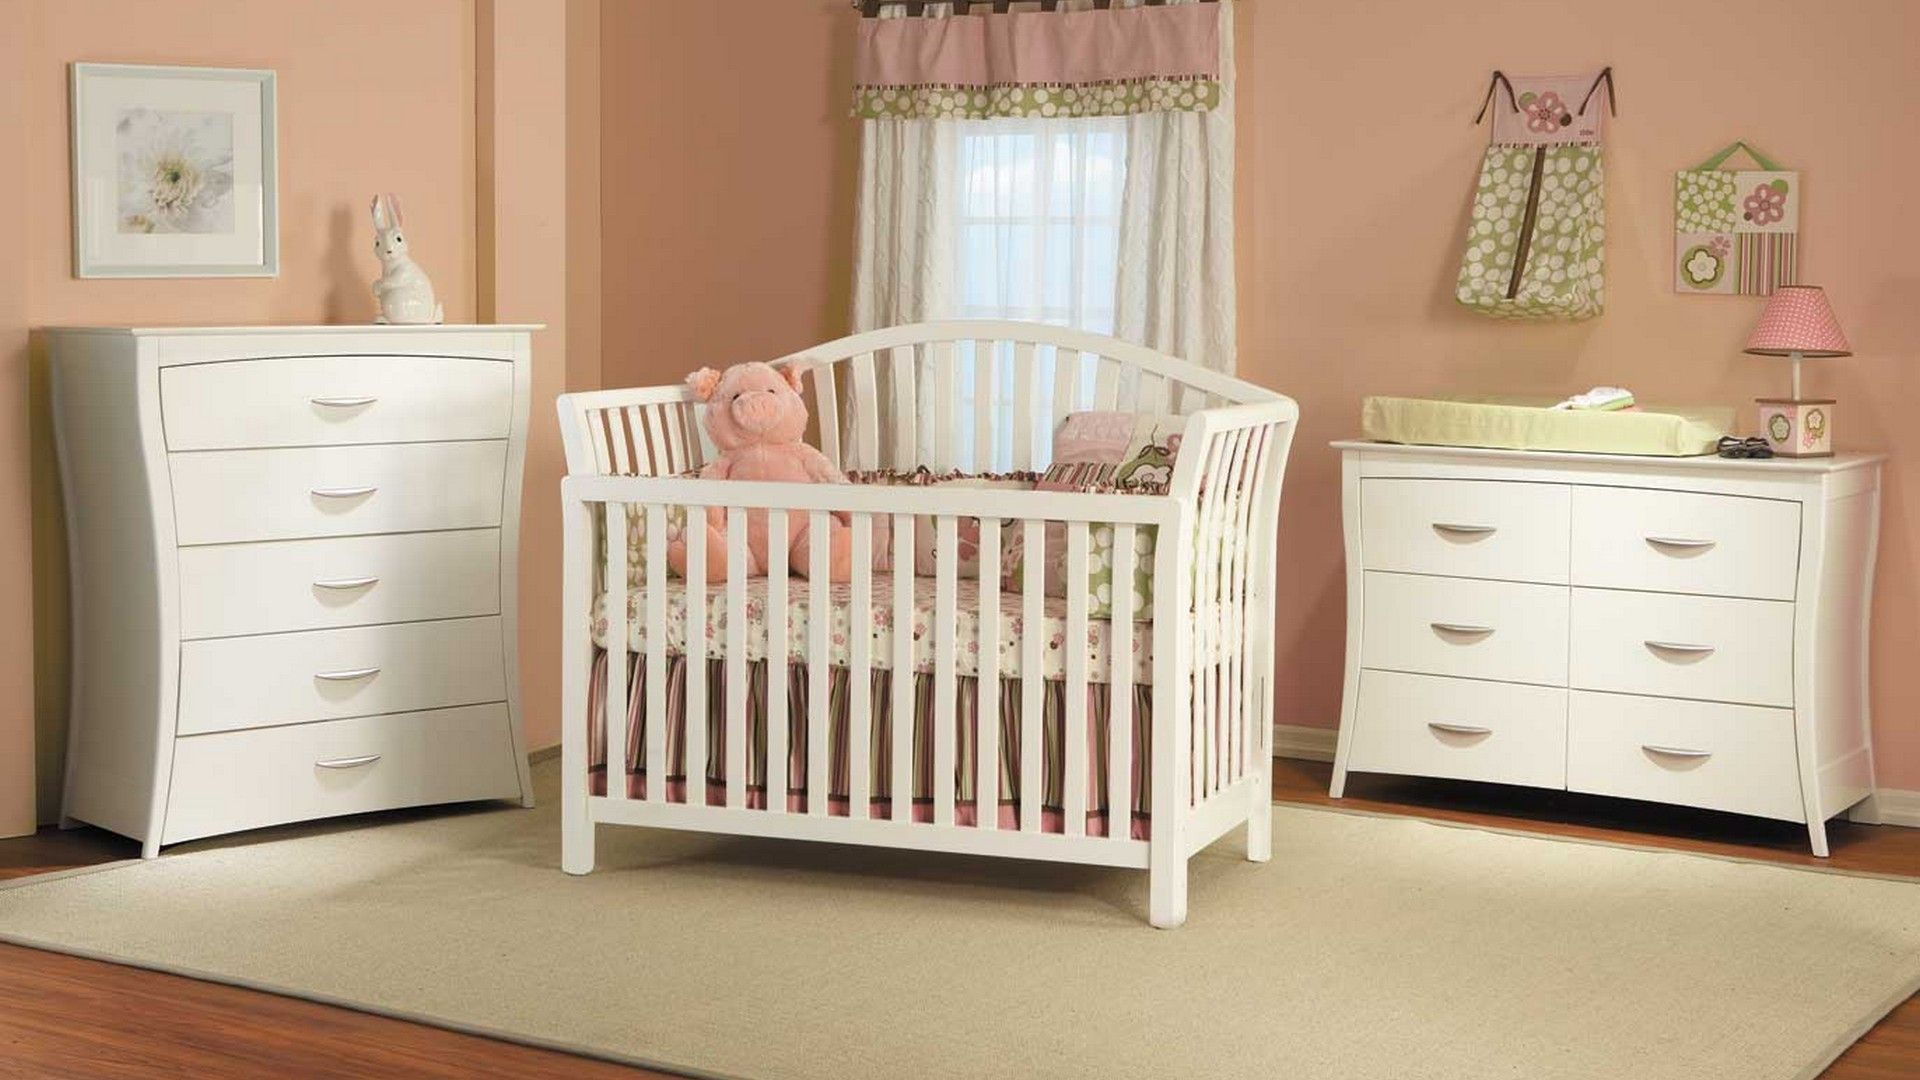 Schlafzimmer cinderella ~ Tempting baby furniture with white crib dressers and pink curtain